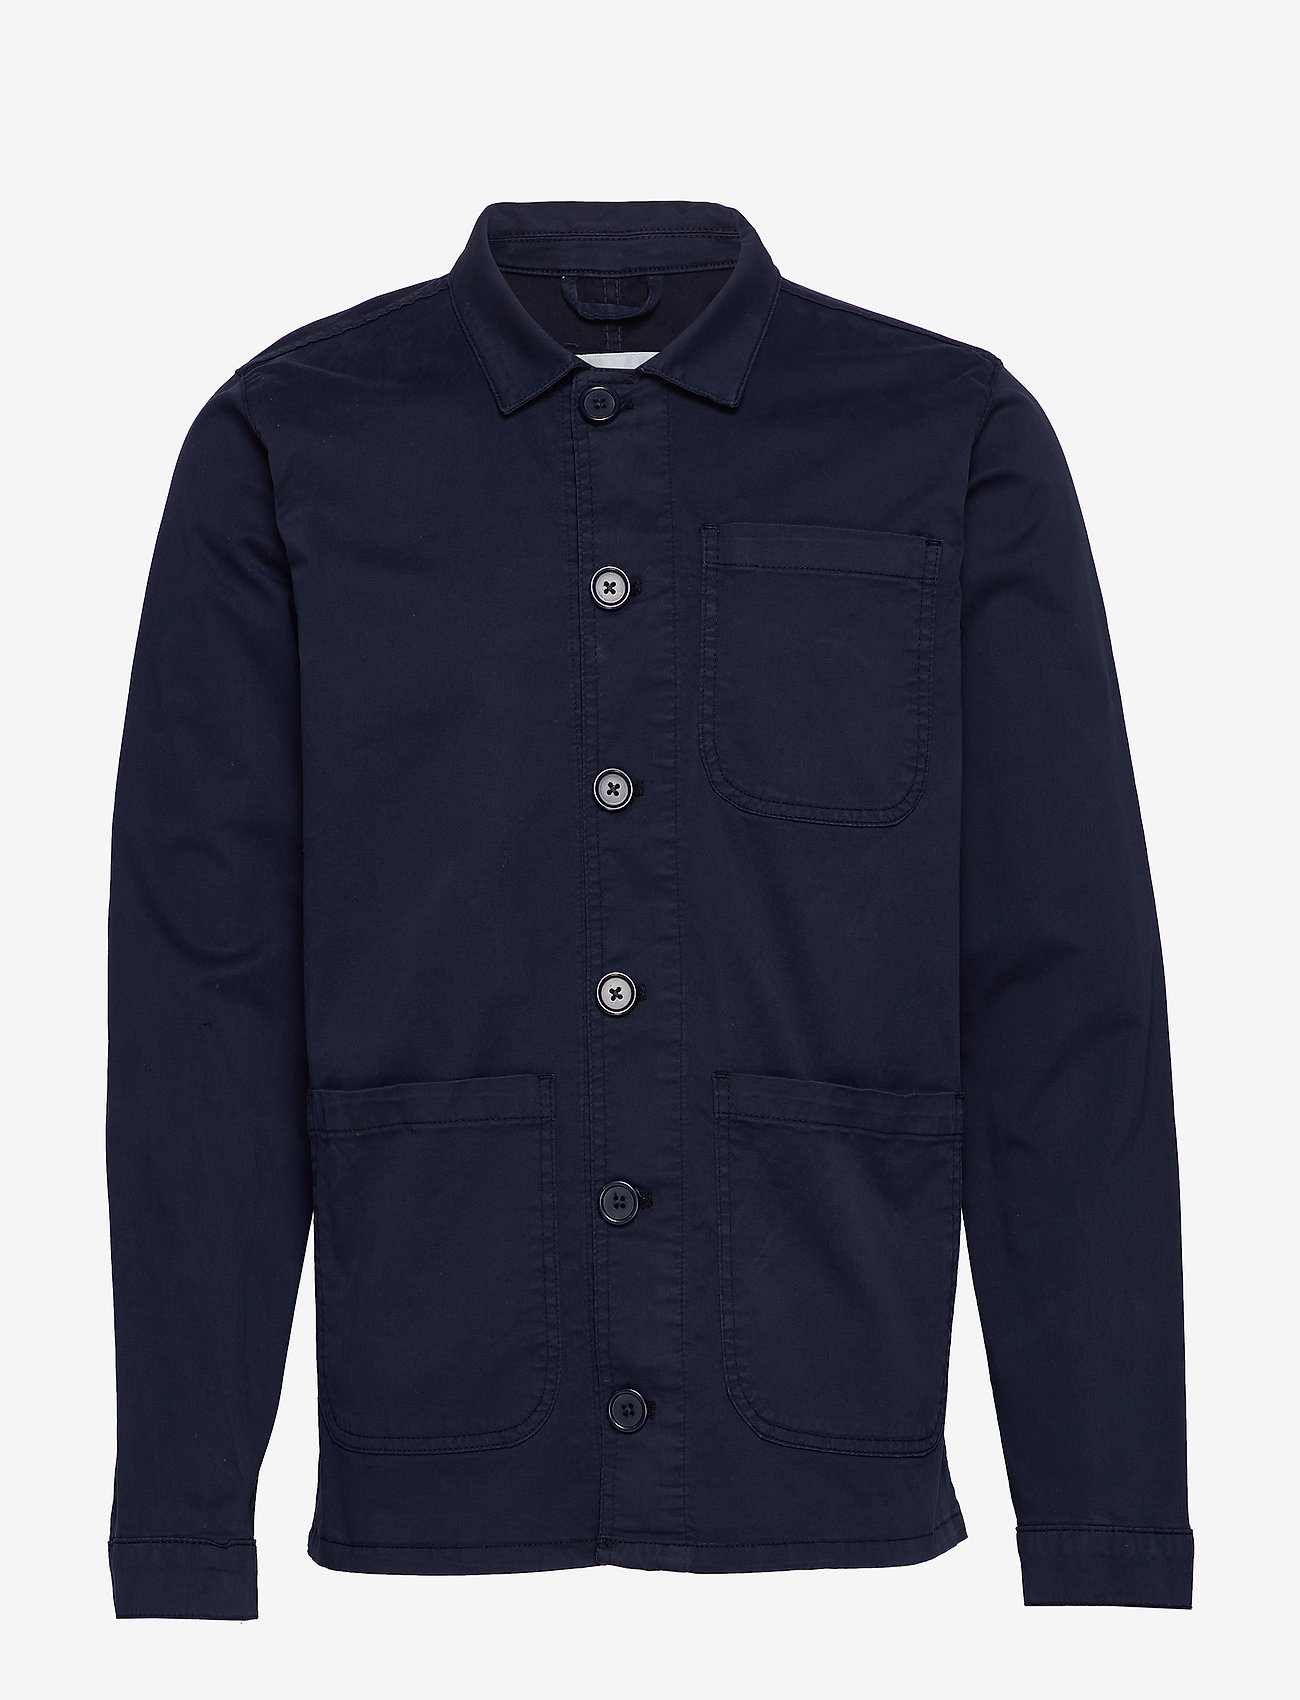 By Garment Makers - The Organic Workwear Jacket - podstawowe koszulki - navy blazer - 1